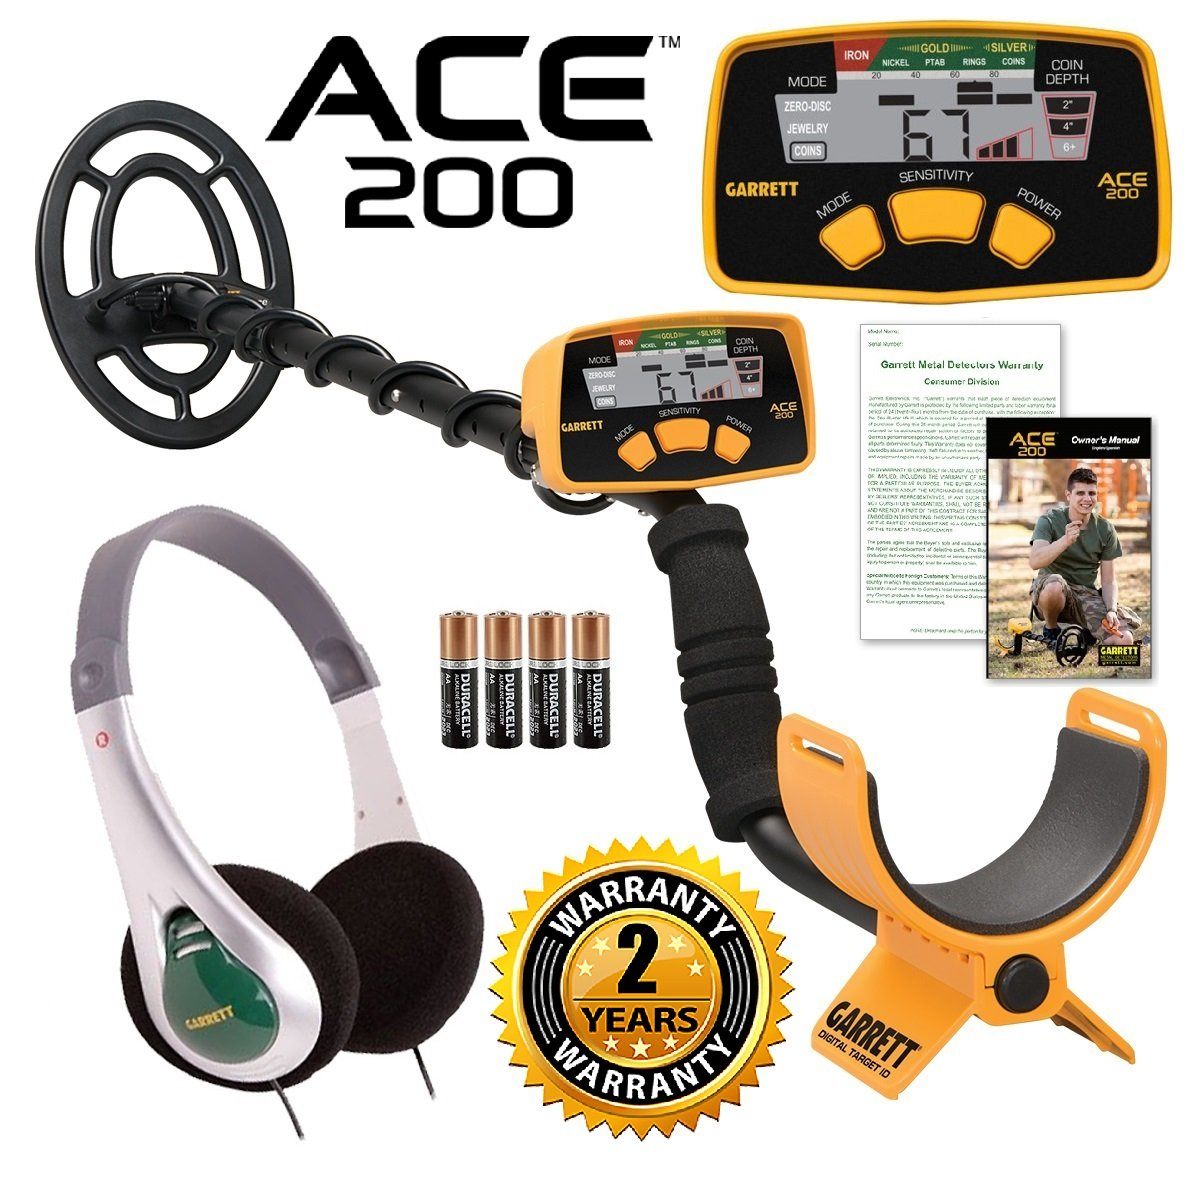 Garrett ACE 200 Metal Detector with Waterproof Search Coil and Treasure Sound Headphone by Jestik